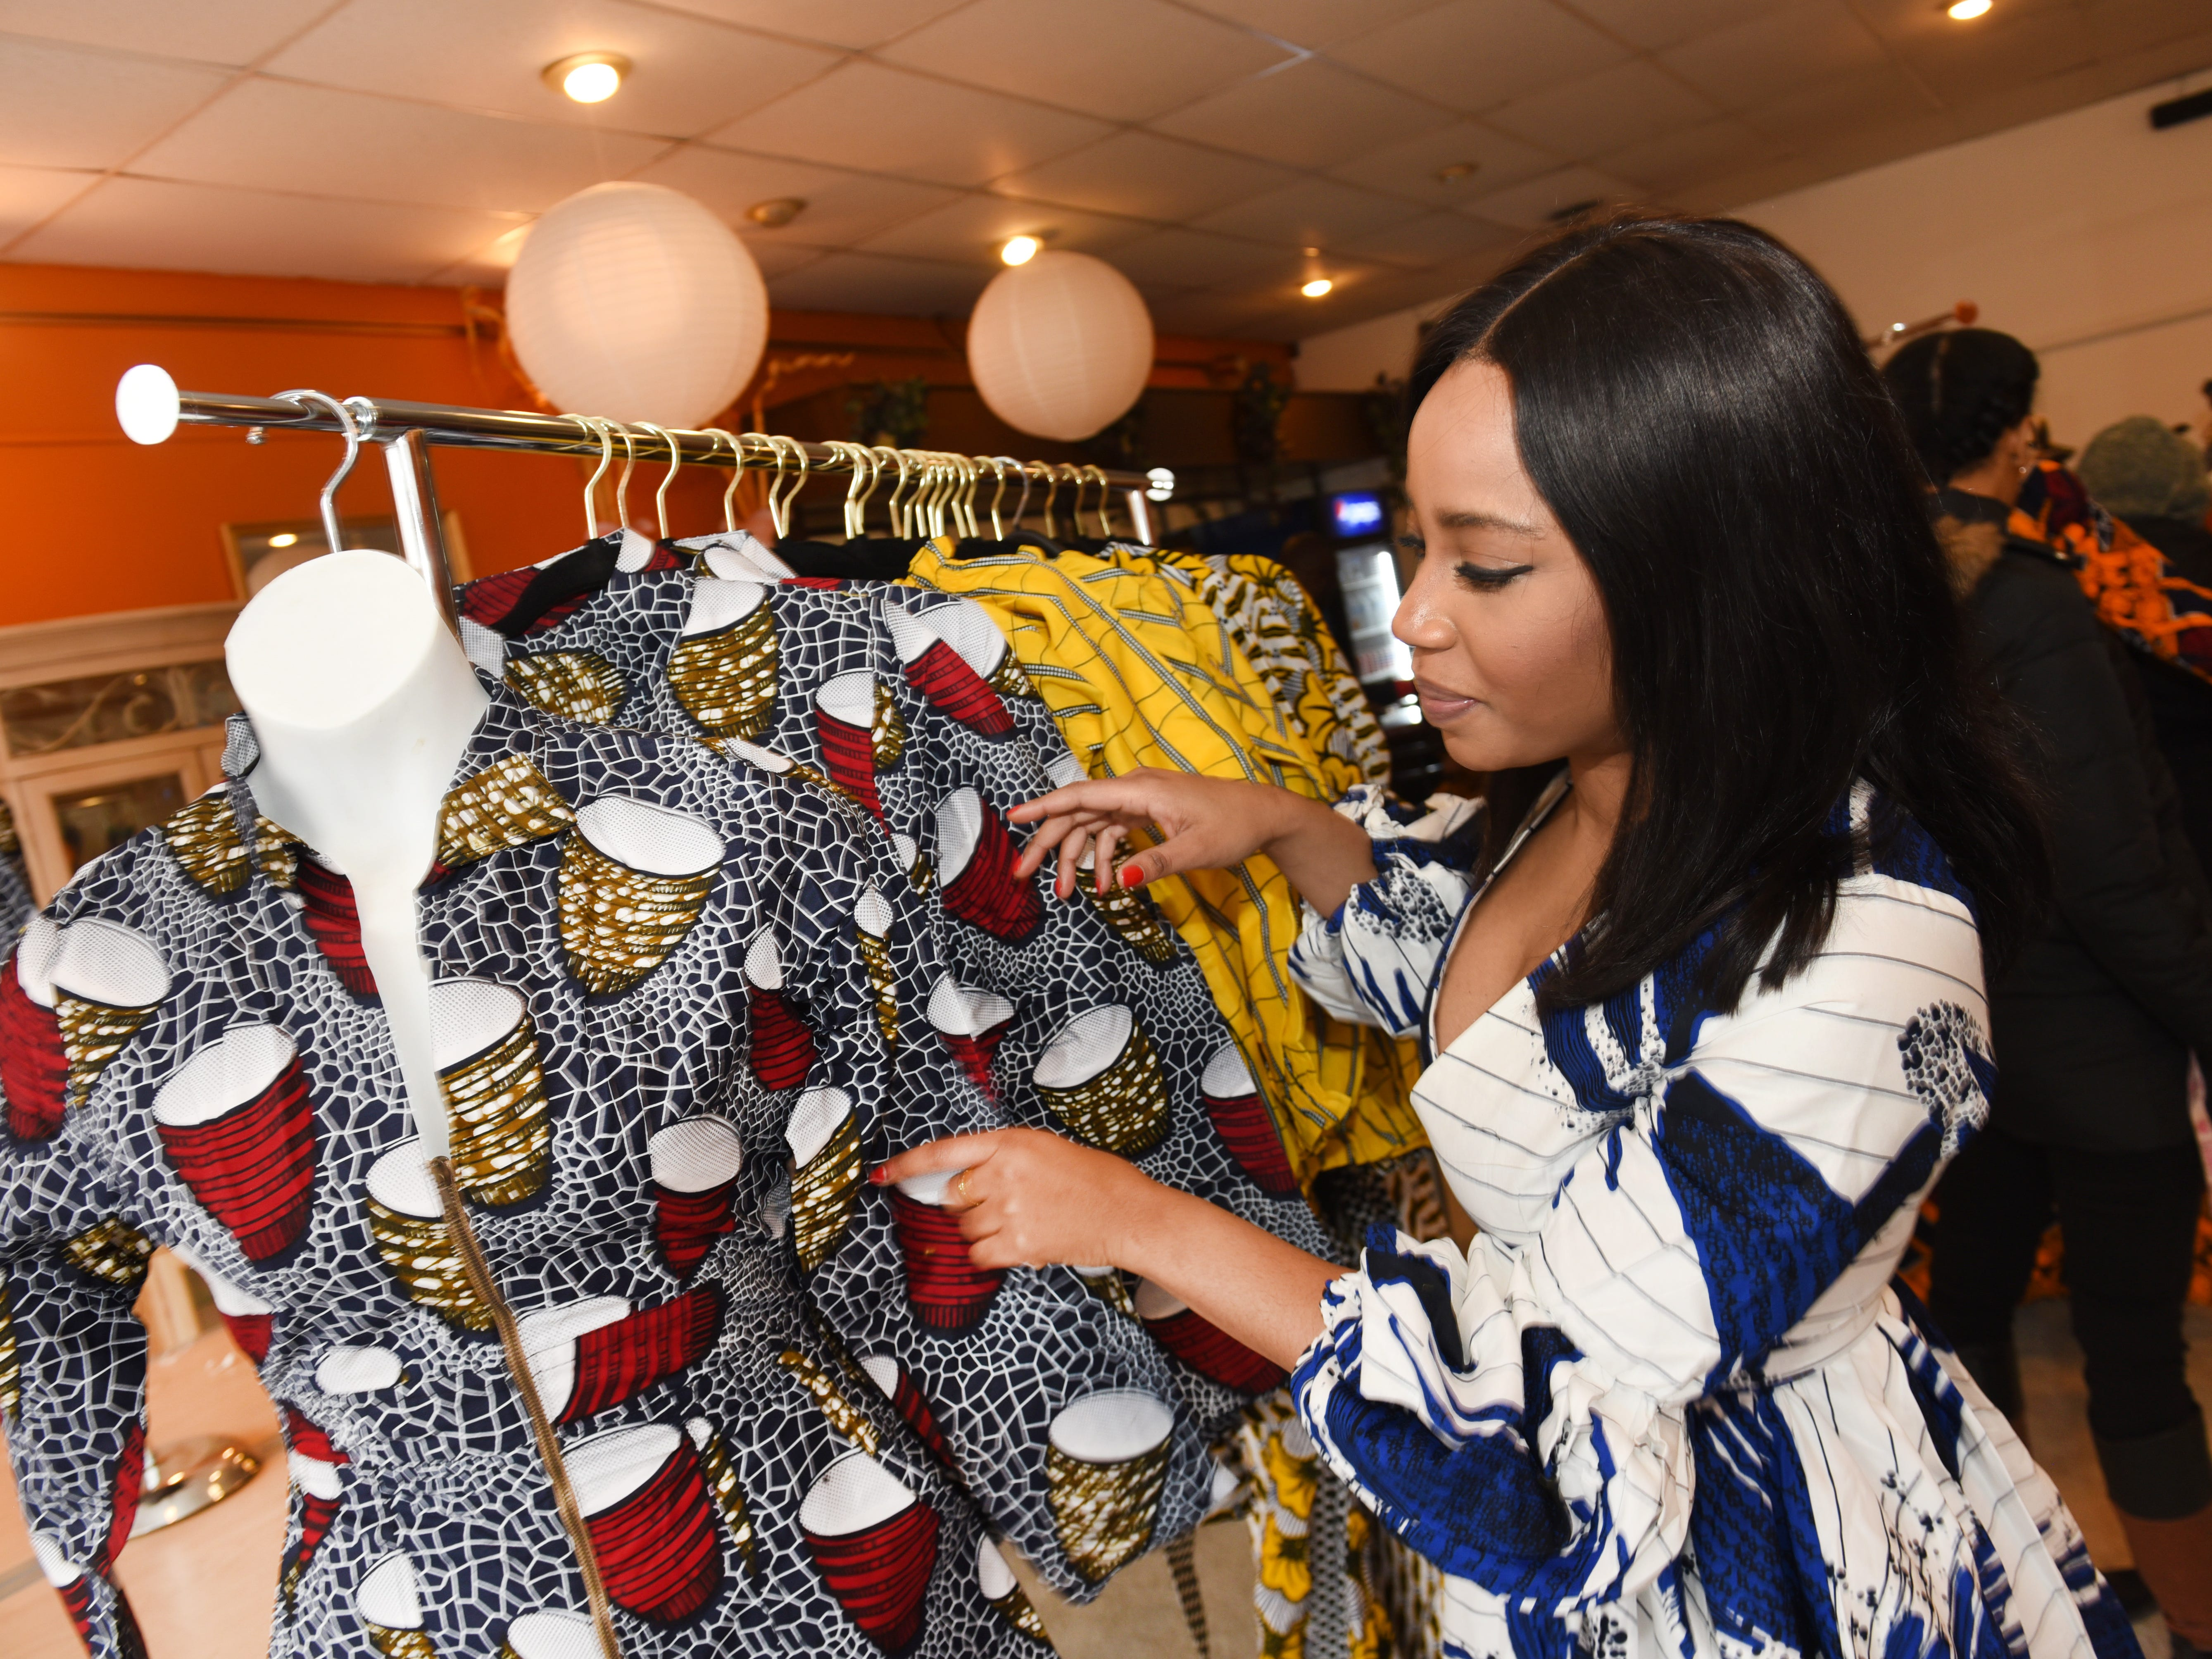 Matilda Harry, owner,  MohoStyle, prepares a clients dress at a  pop-up store along the Avenue of Fashion in Detroit.